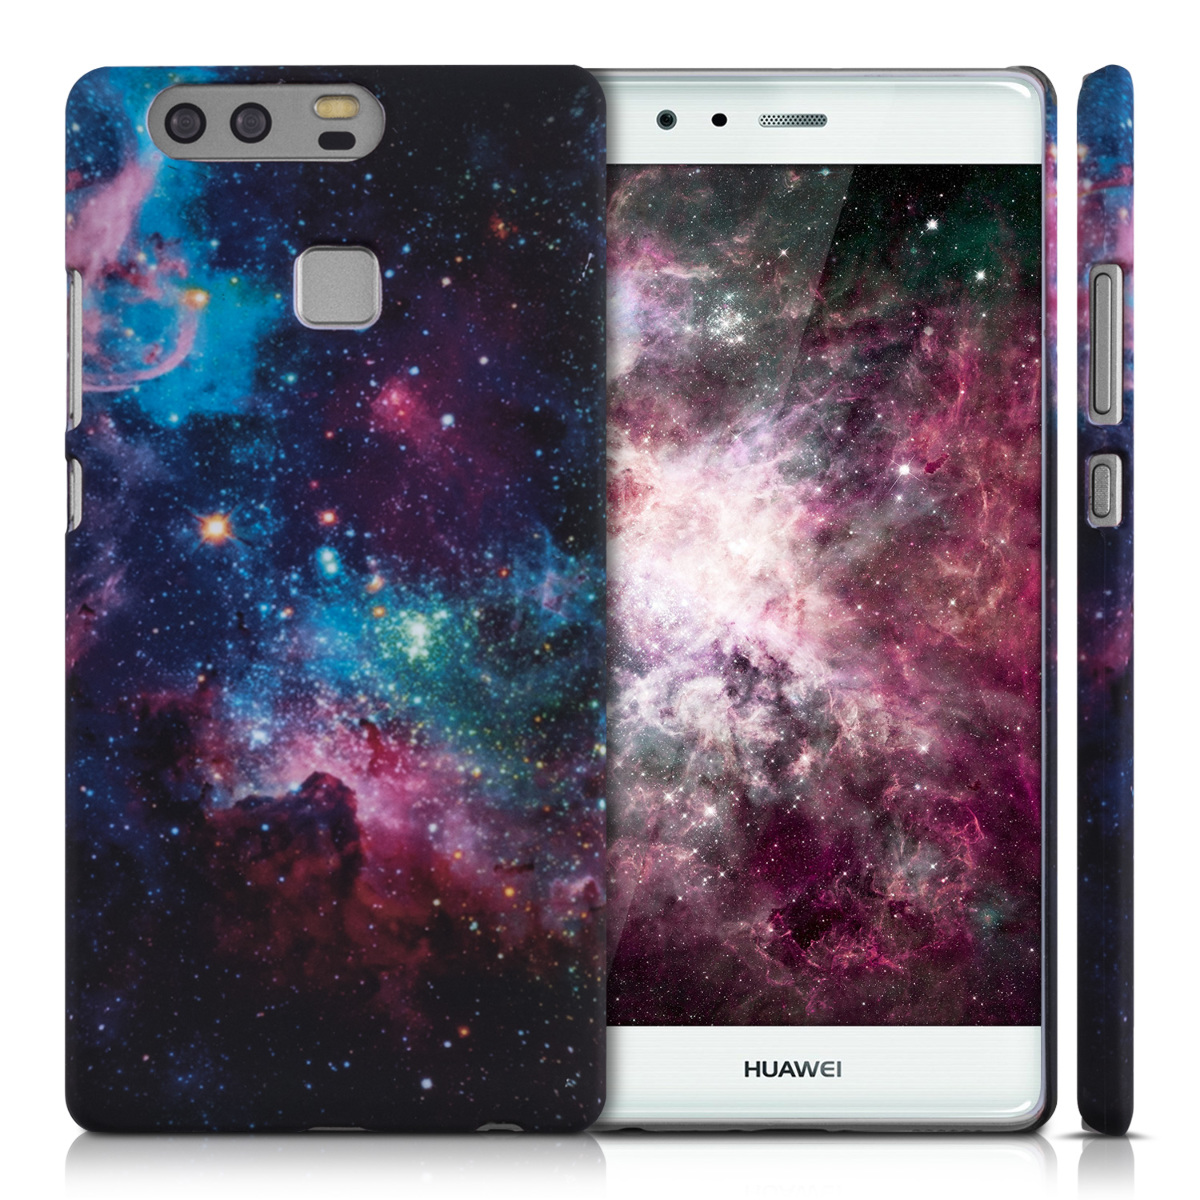 HARD-COVER-FOR-HUAWEI-P9-CASE-BACK-SHELL-BUMPER-MOBILE-PHONE-PROTECTIVE-COVER